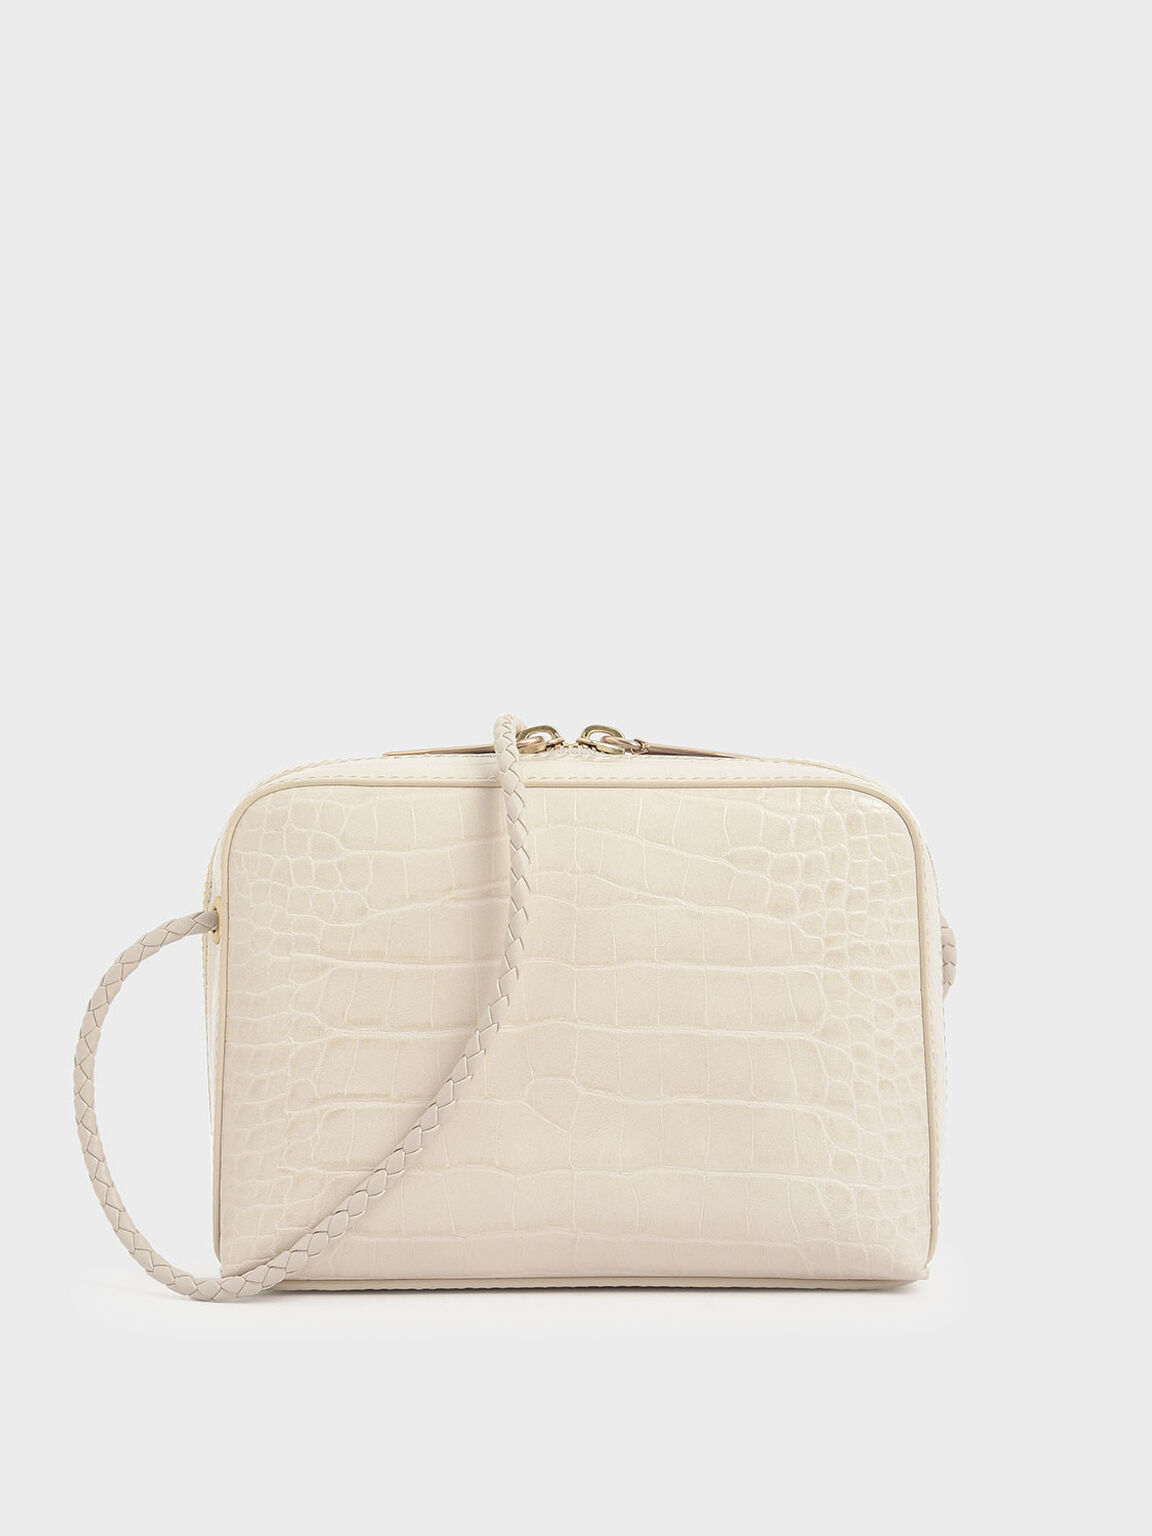 Croc-Effect Mini Rectangular Crossbody Bag, Cream, hi-res